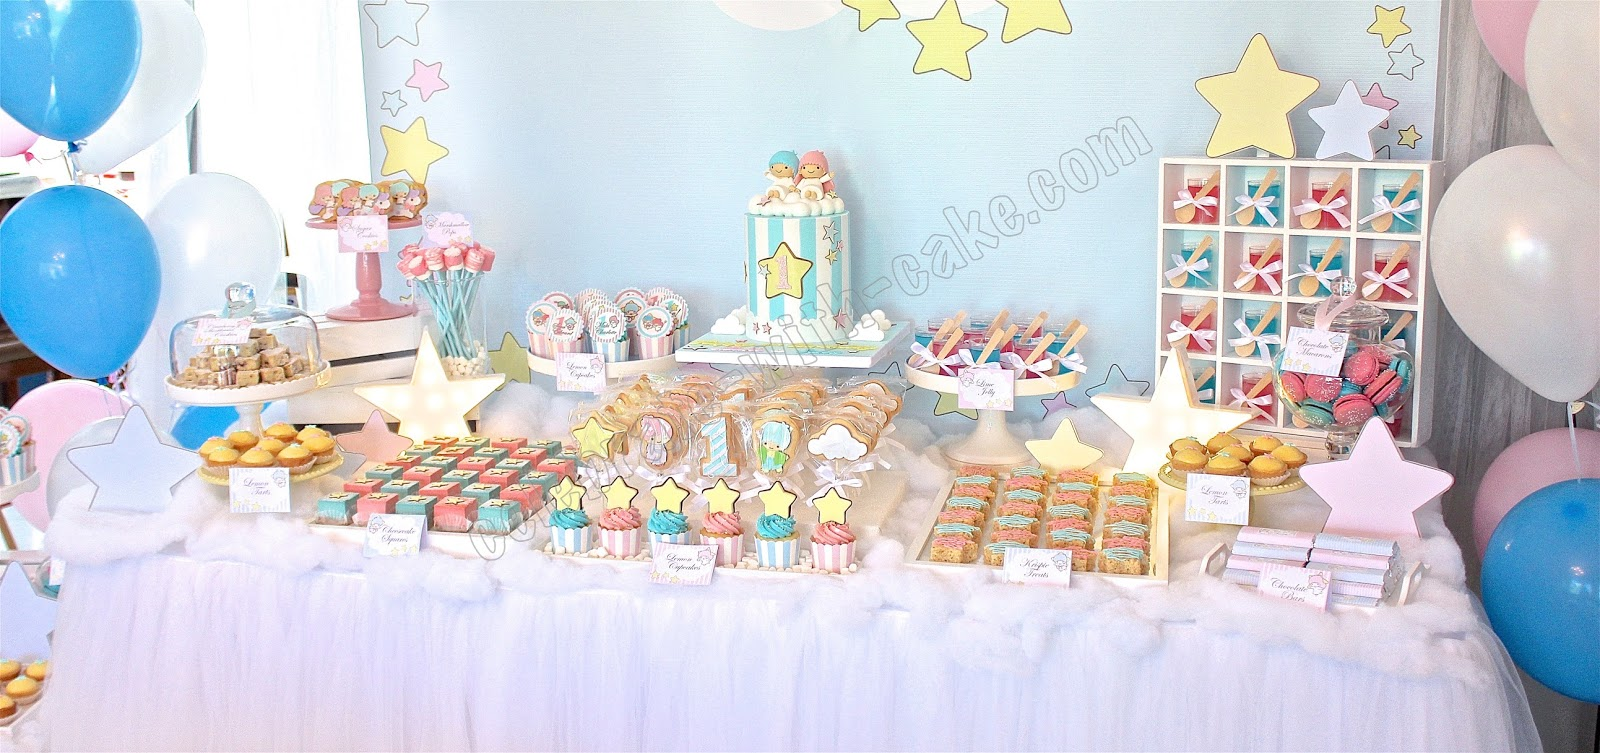 Celebrate with cake little twin stars dessert table for Anpanman cake decoration